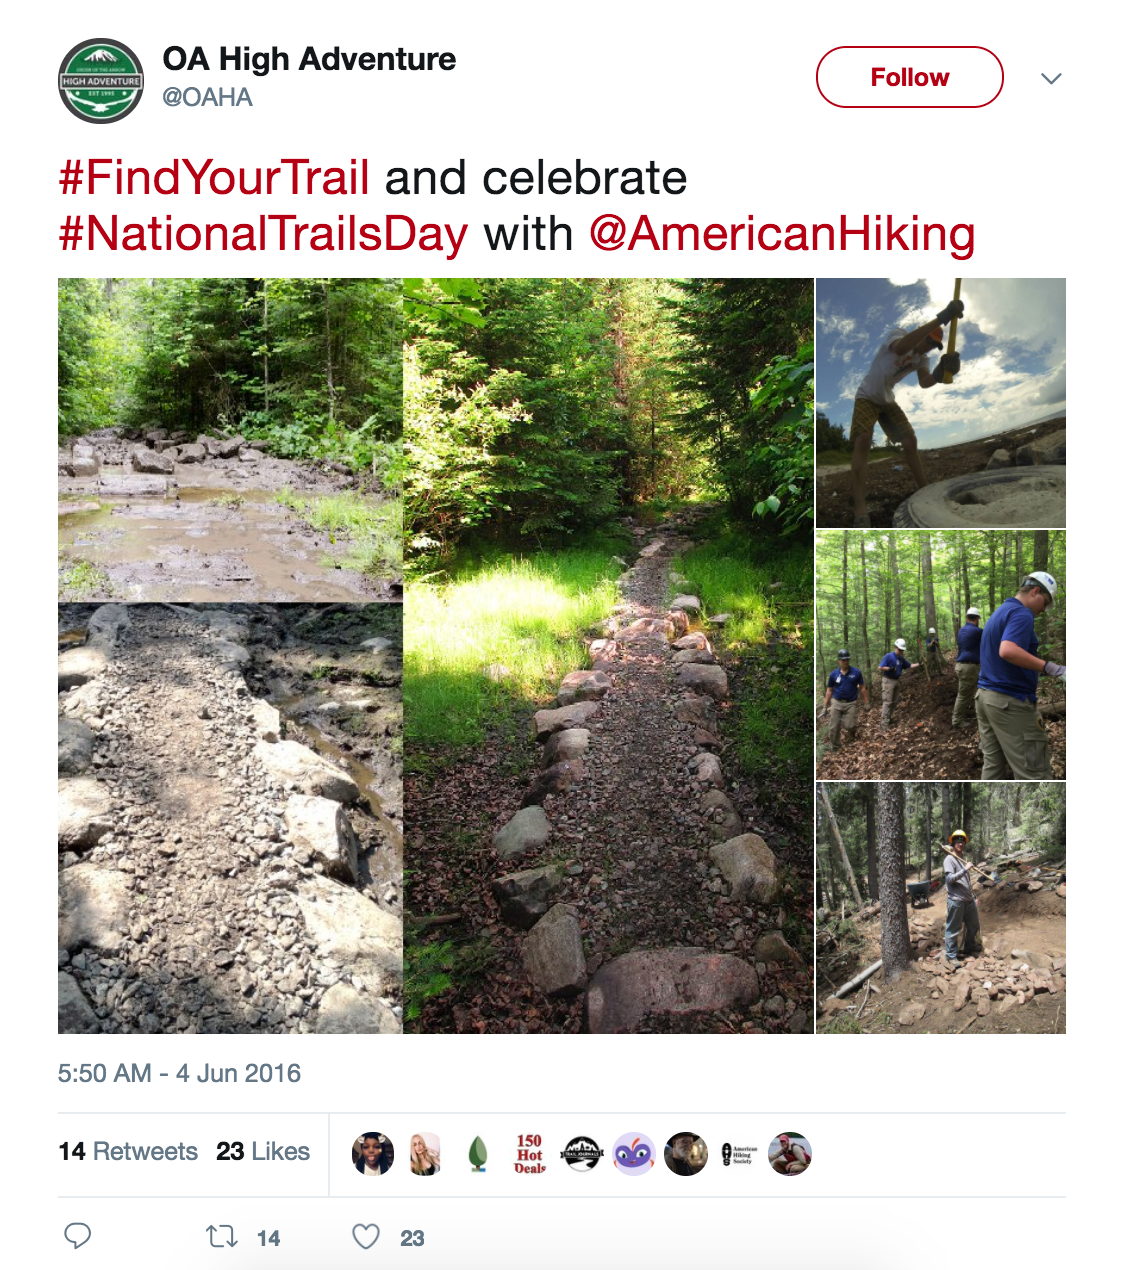 Find Your Trail OAHA Twitter